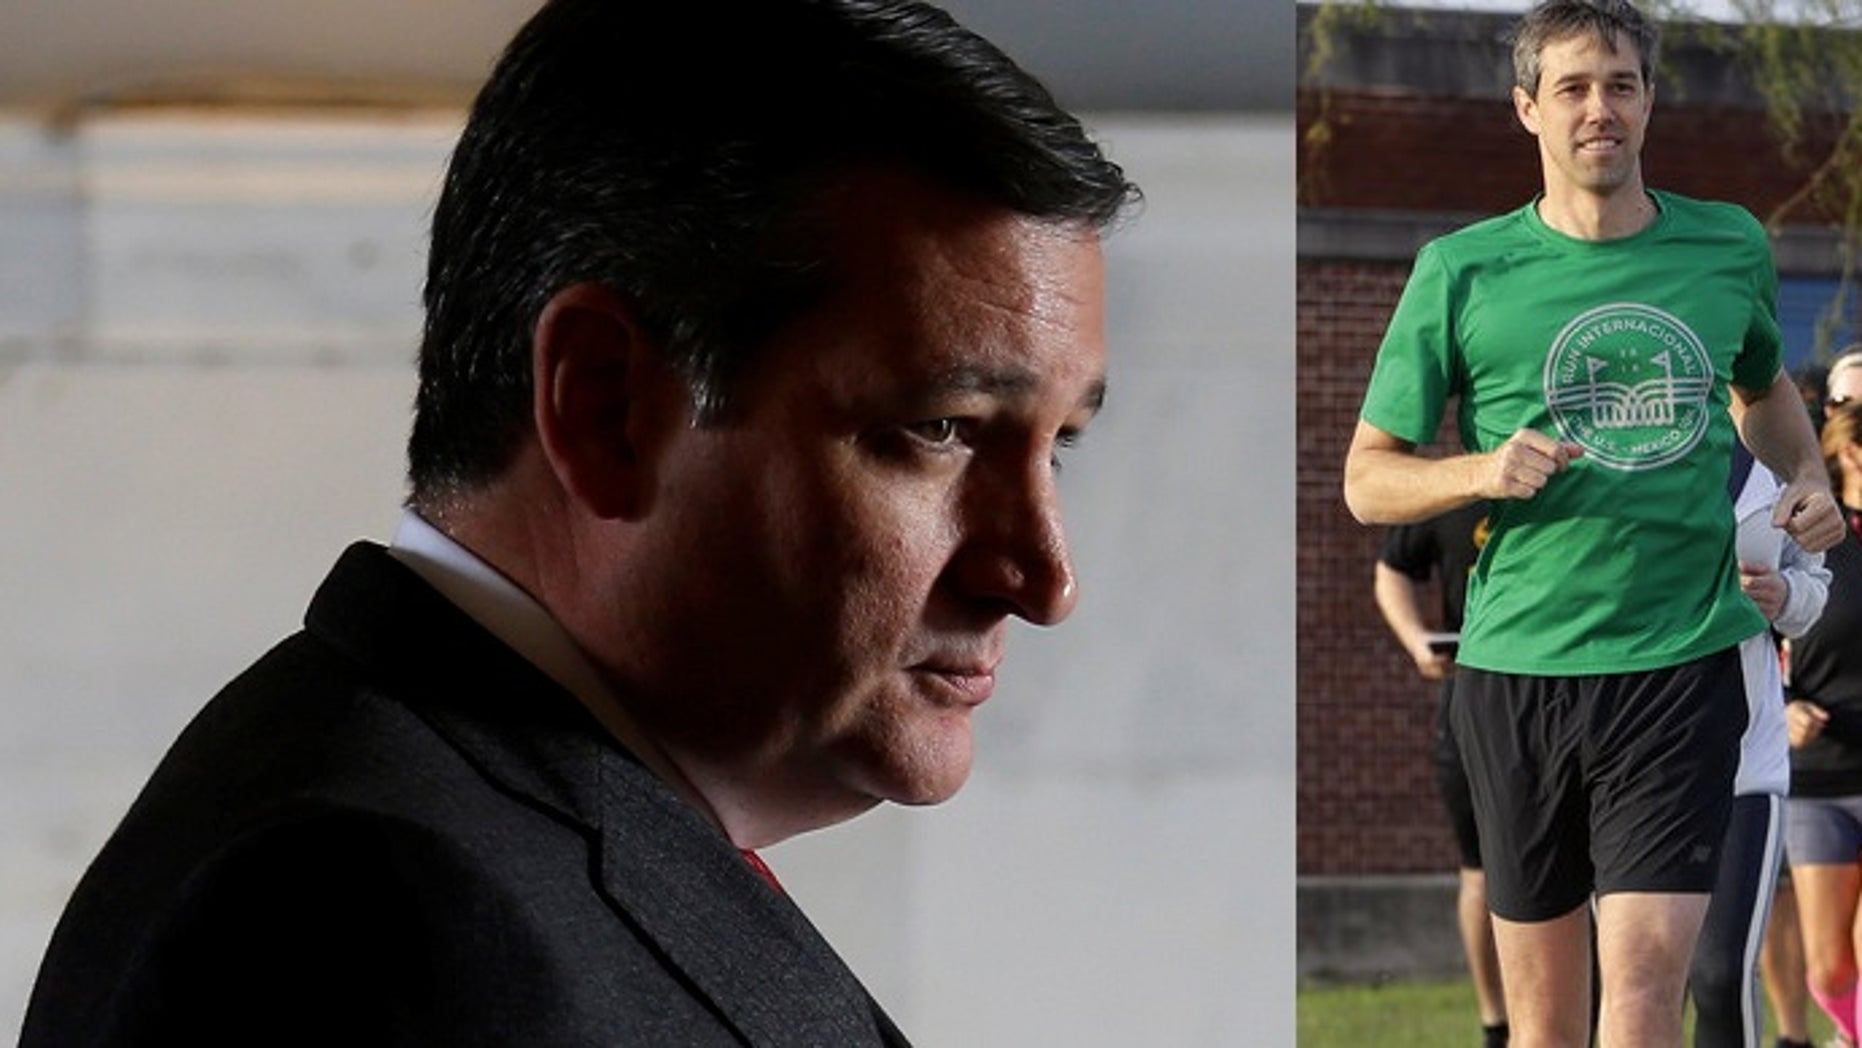 Ted Cruz has been out-fundraised so far in 2018 by his upstart Democratic challenger, federal filings show.